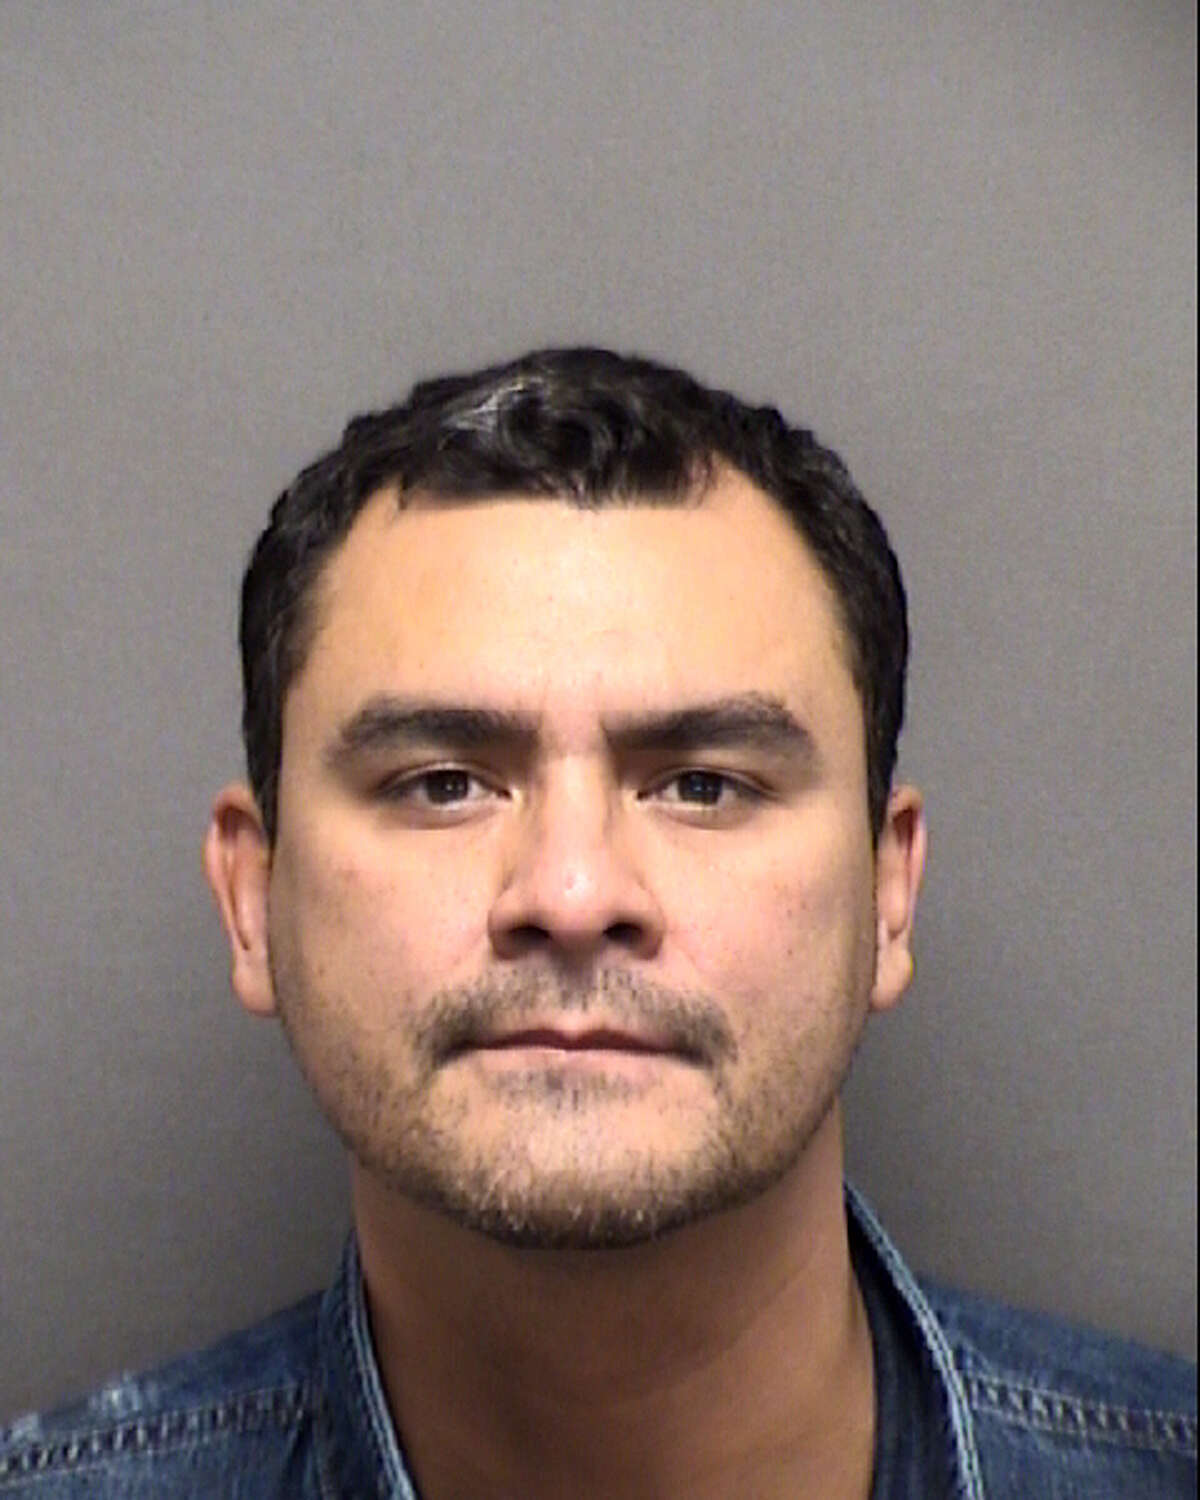 Luis Lara was charged with driving while intoxicated, third or more,on Jan. 26, 2019.